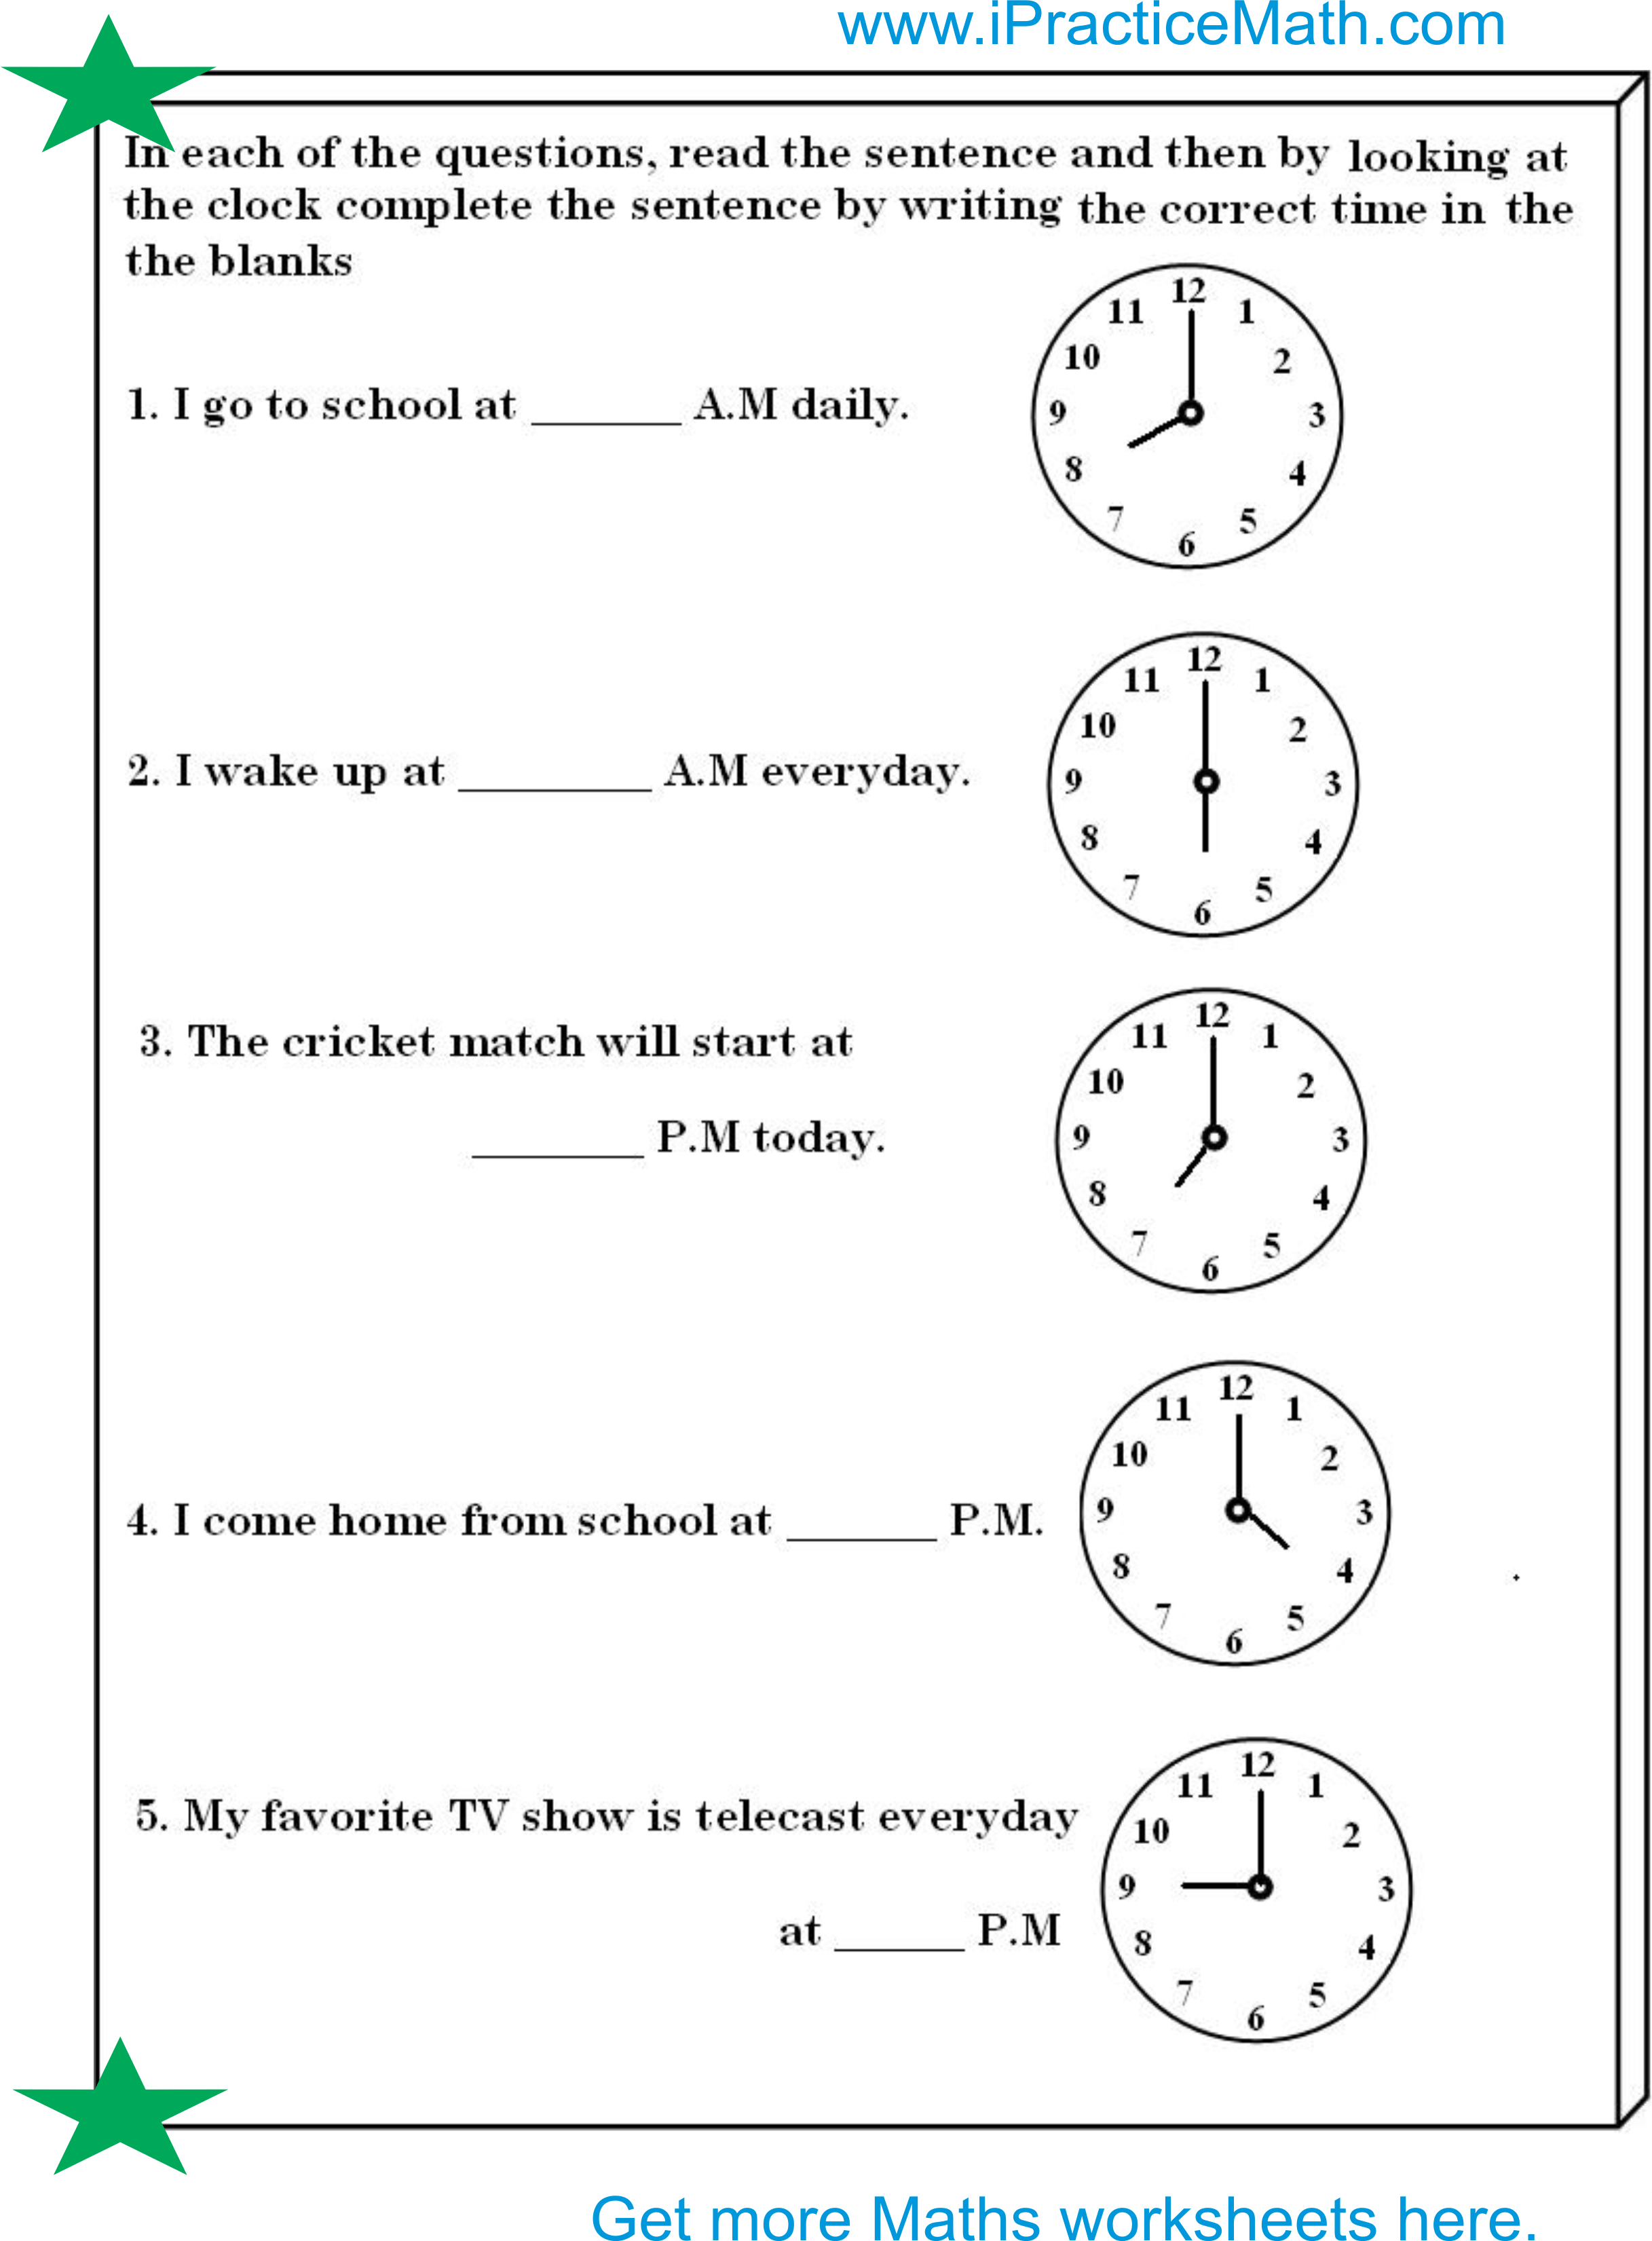 Worksheet Ipractice Math